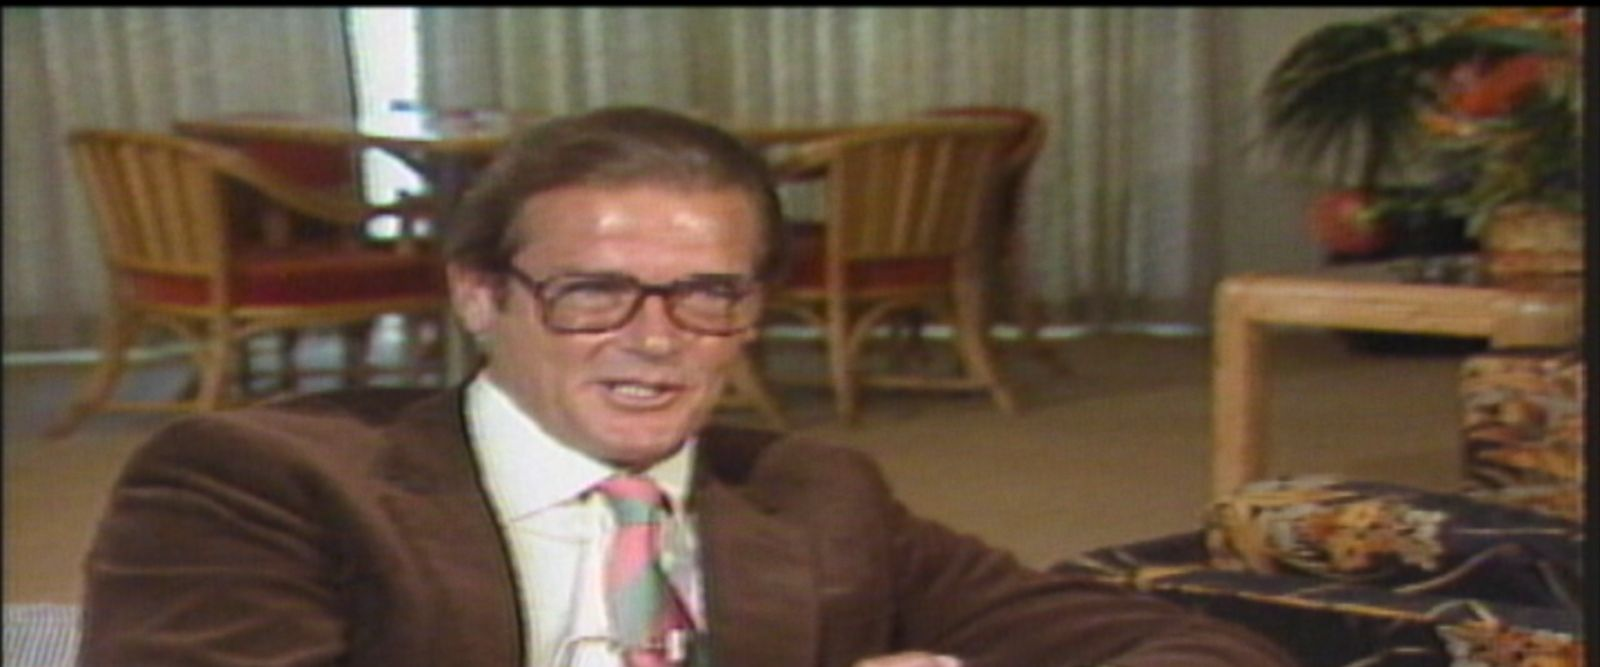 """""""In England, they stop shooting at 5:30 ... because the English like to go home at 6 o'clock and watch whatever their favorite soap opera is and have their steak and kidney pie,"""" Roger Moore told ABC News."""